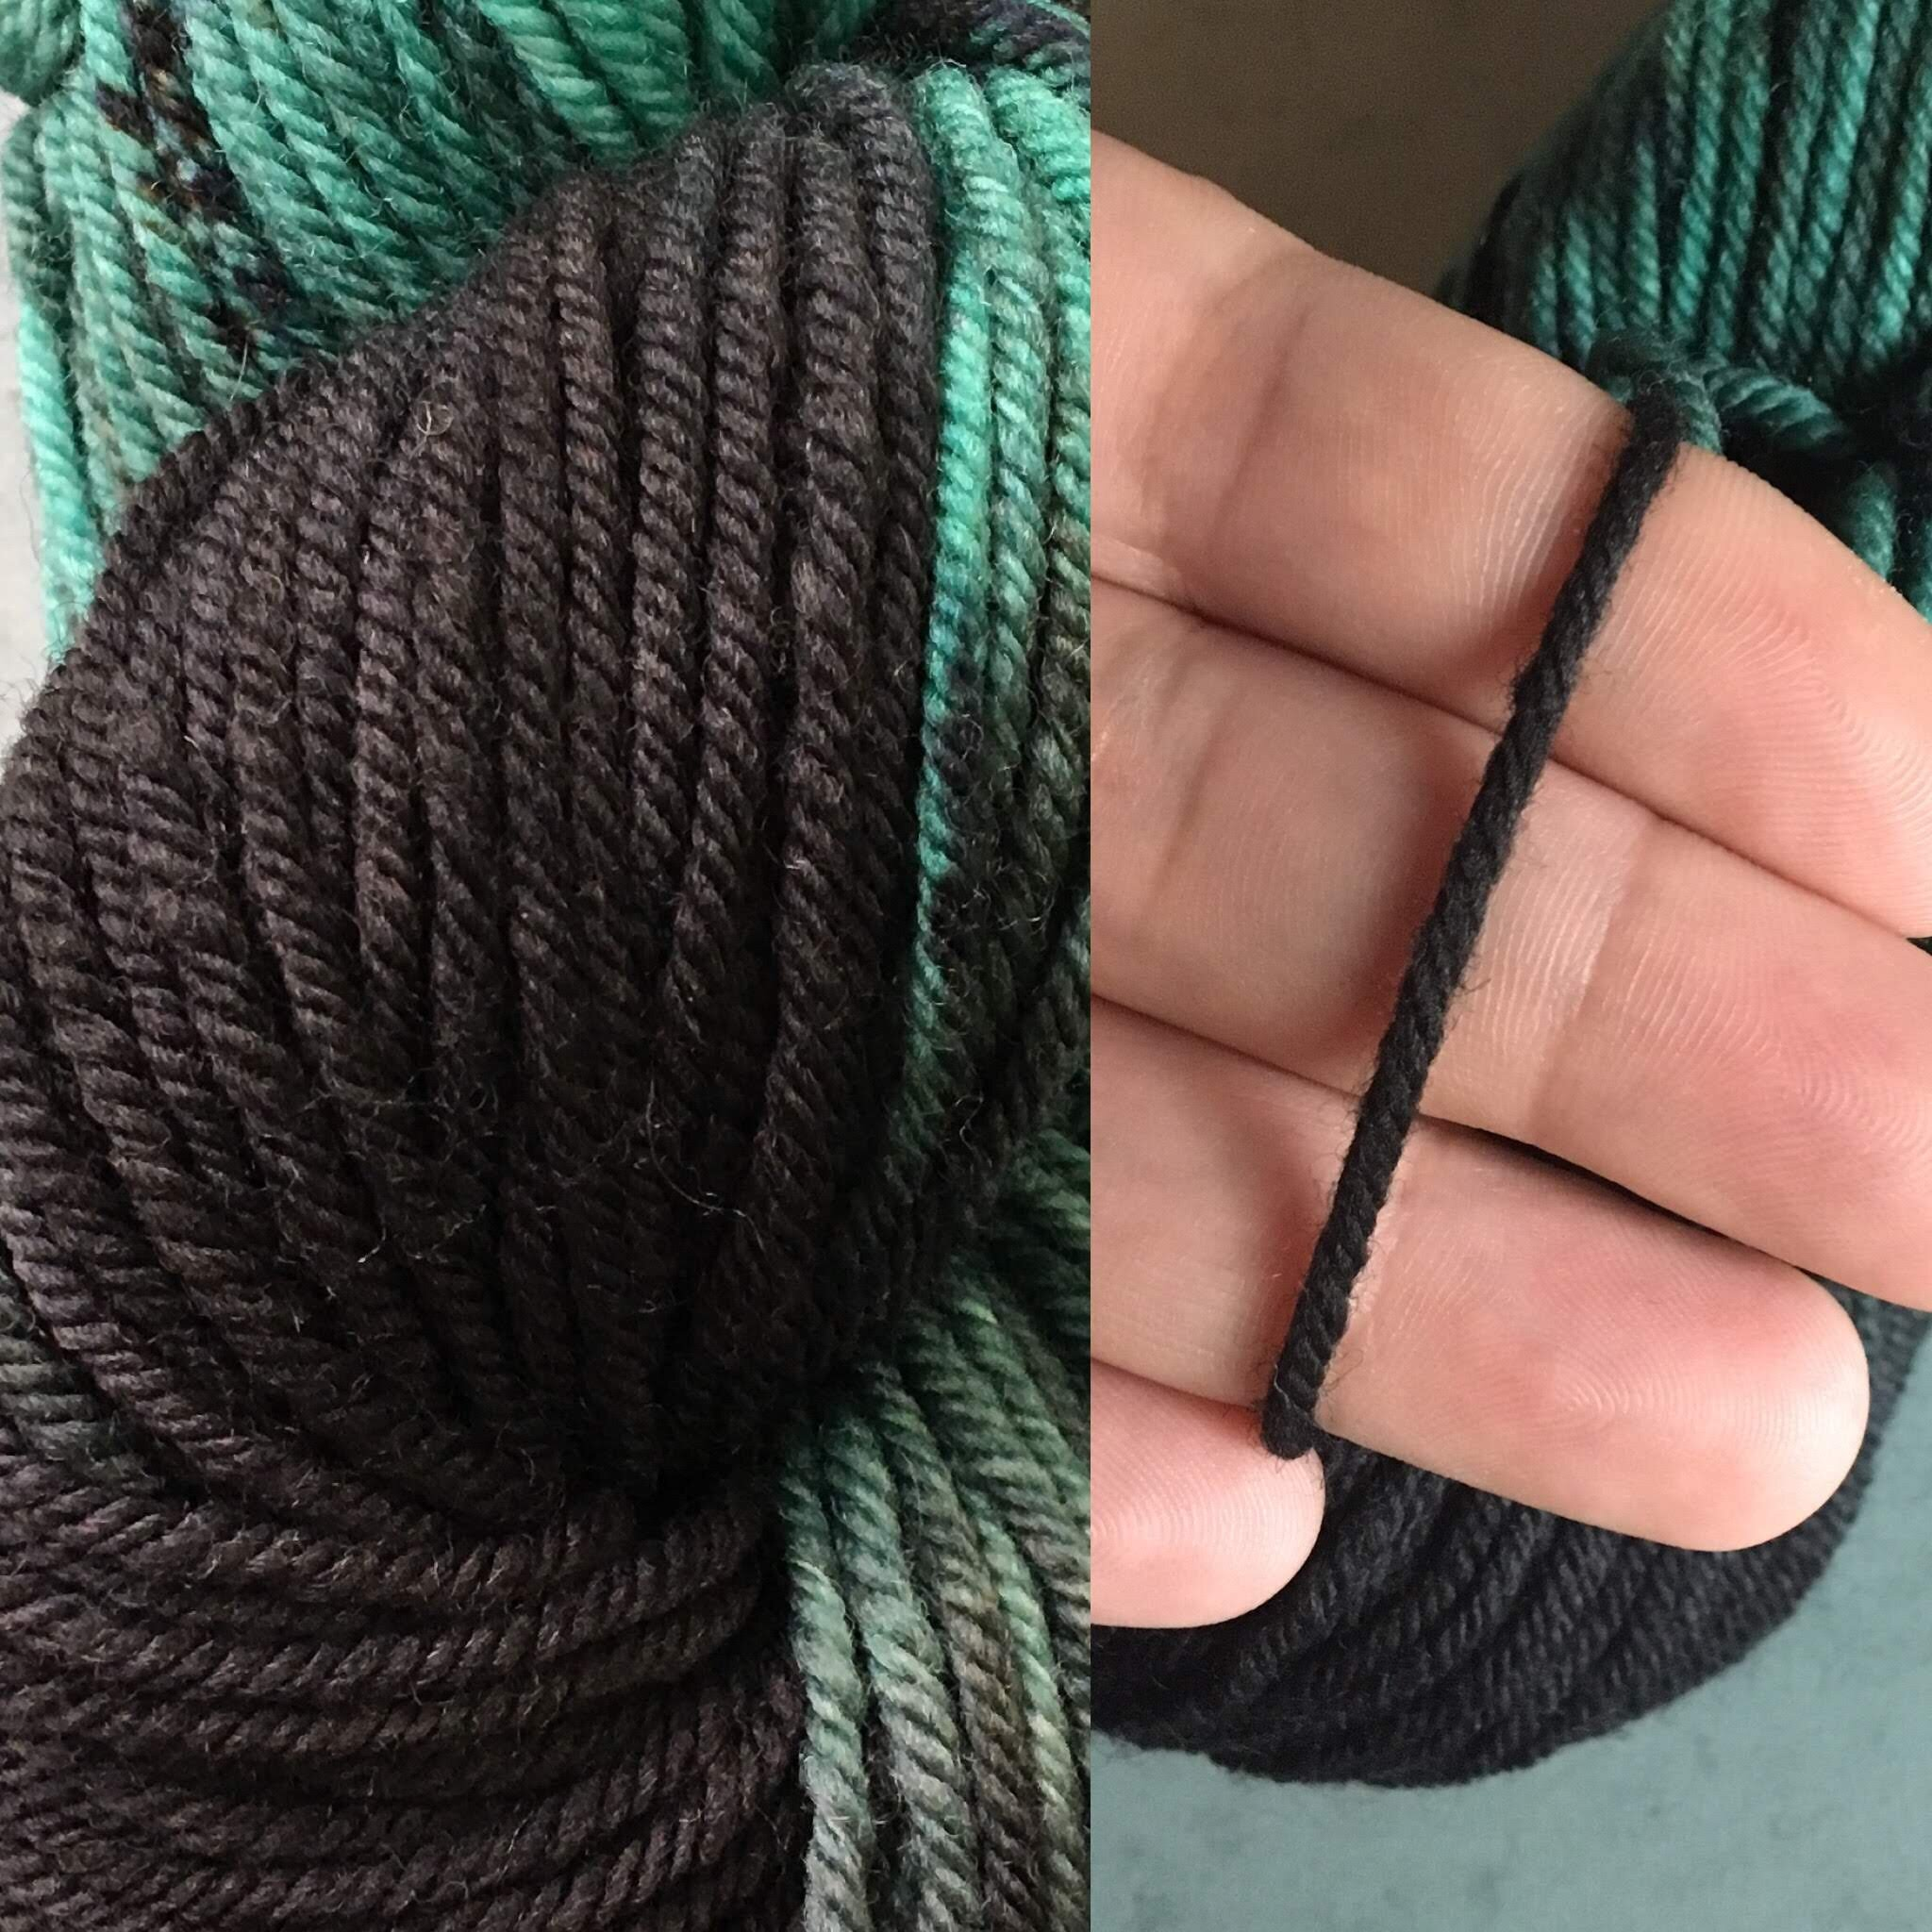 willow worsted close up.jpg